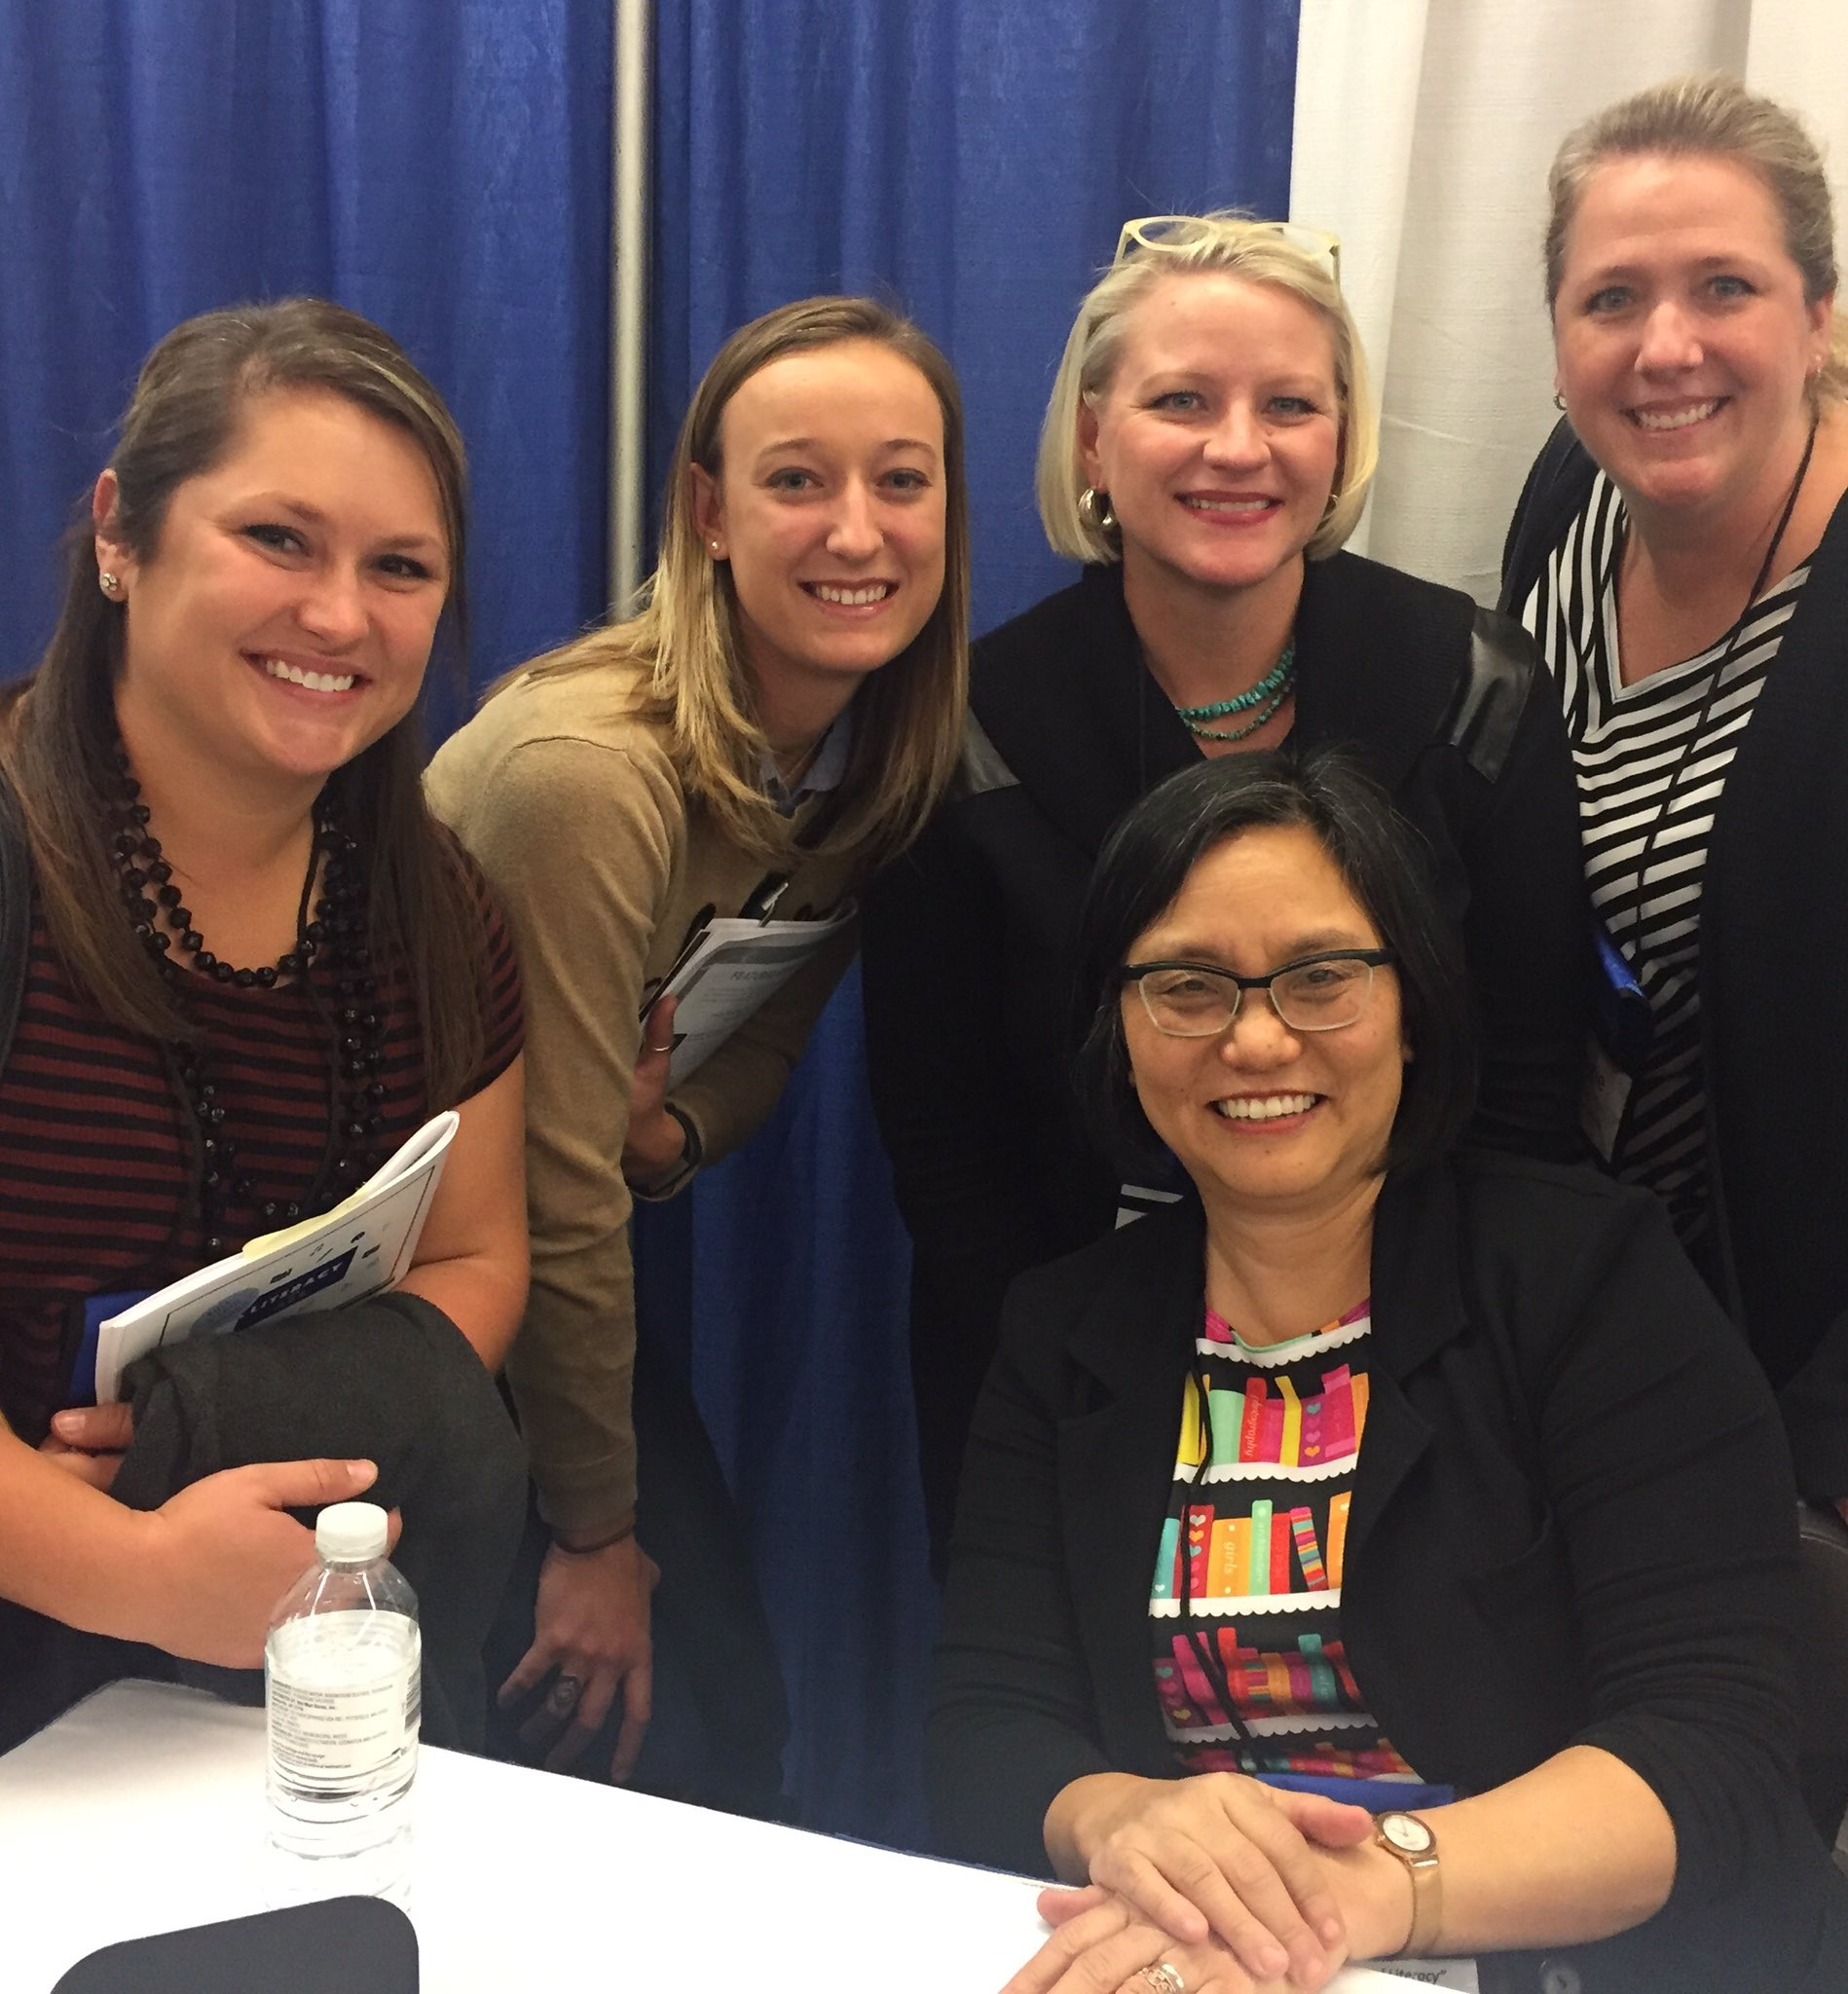 We got to meet Linda Sue Park today! #ALongWalkToWater #NYSRA2016 @MadameDrees @BuffettLibrary @ReadingRitchie https://t.co/0YEcu18Blt